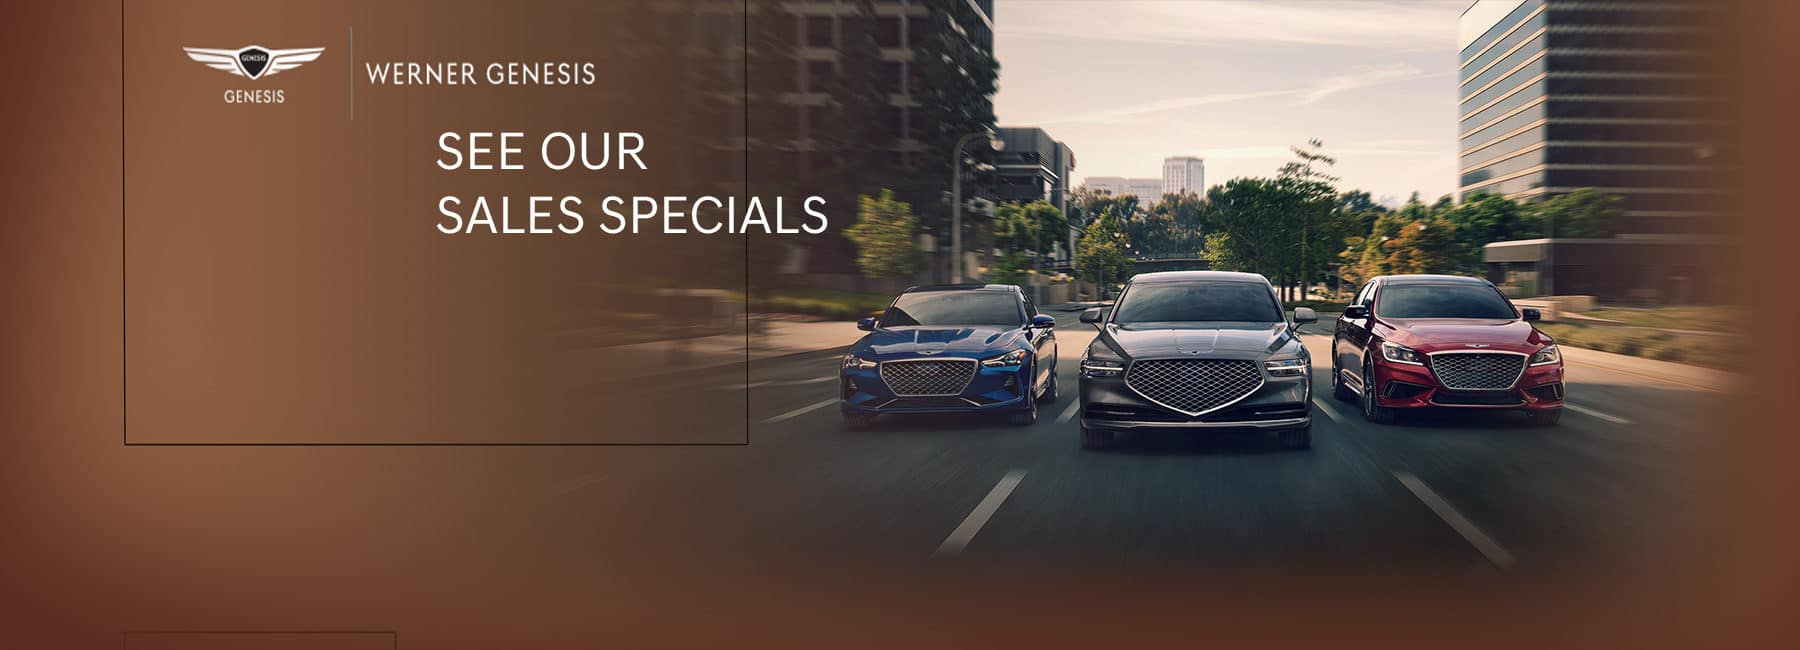 See Our Sales Specials